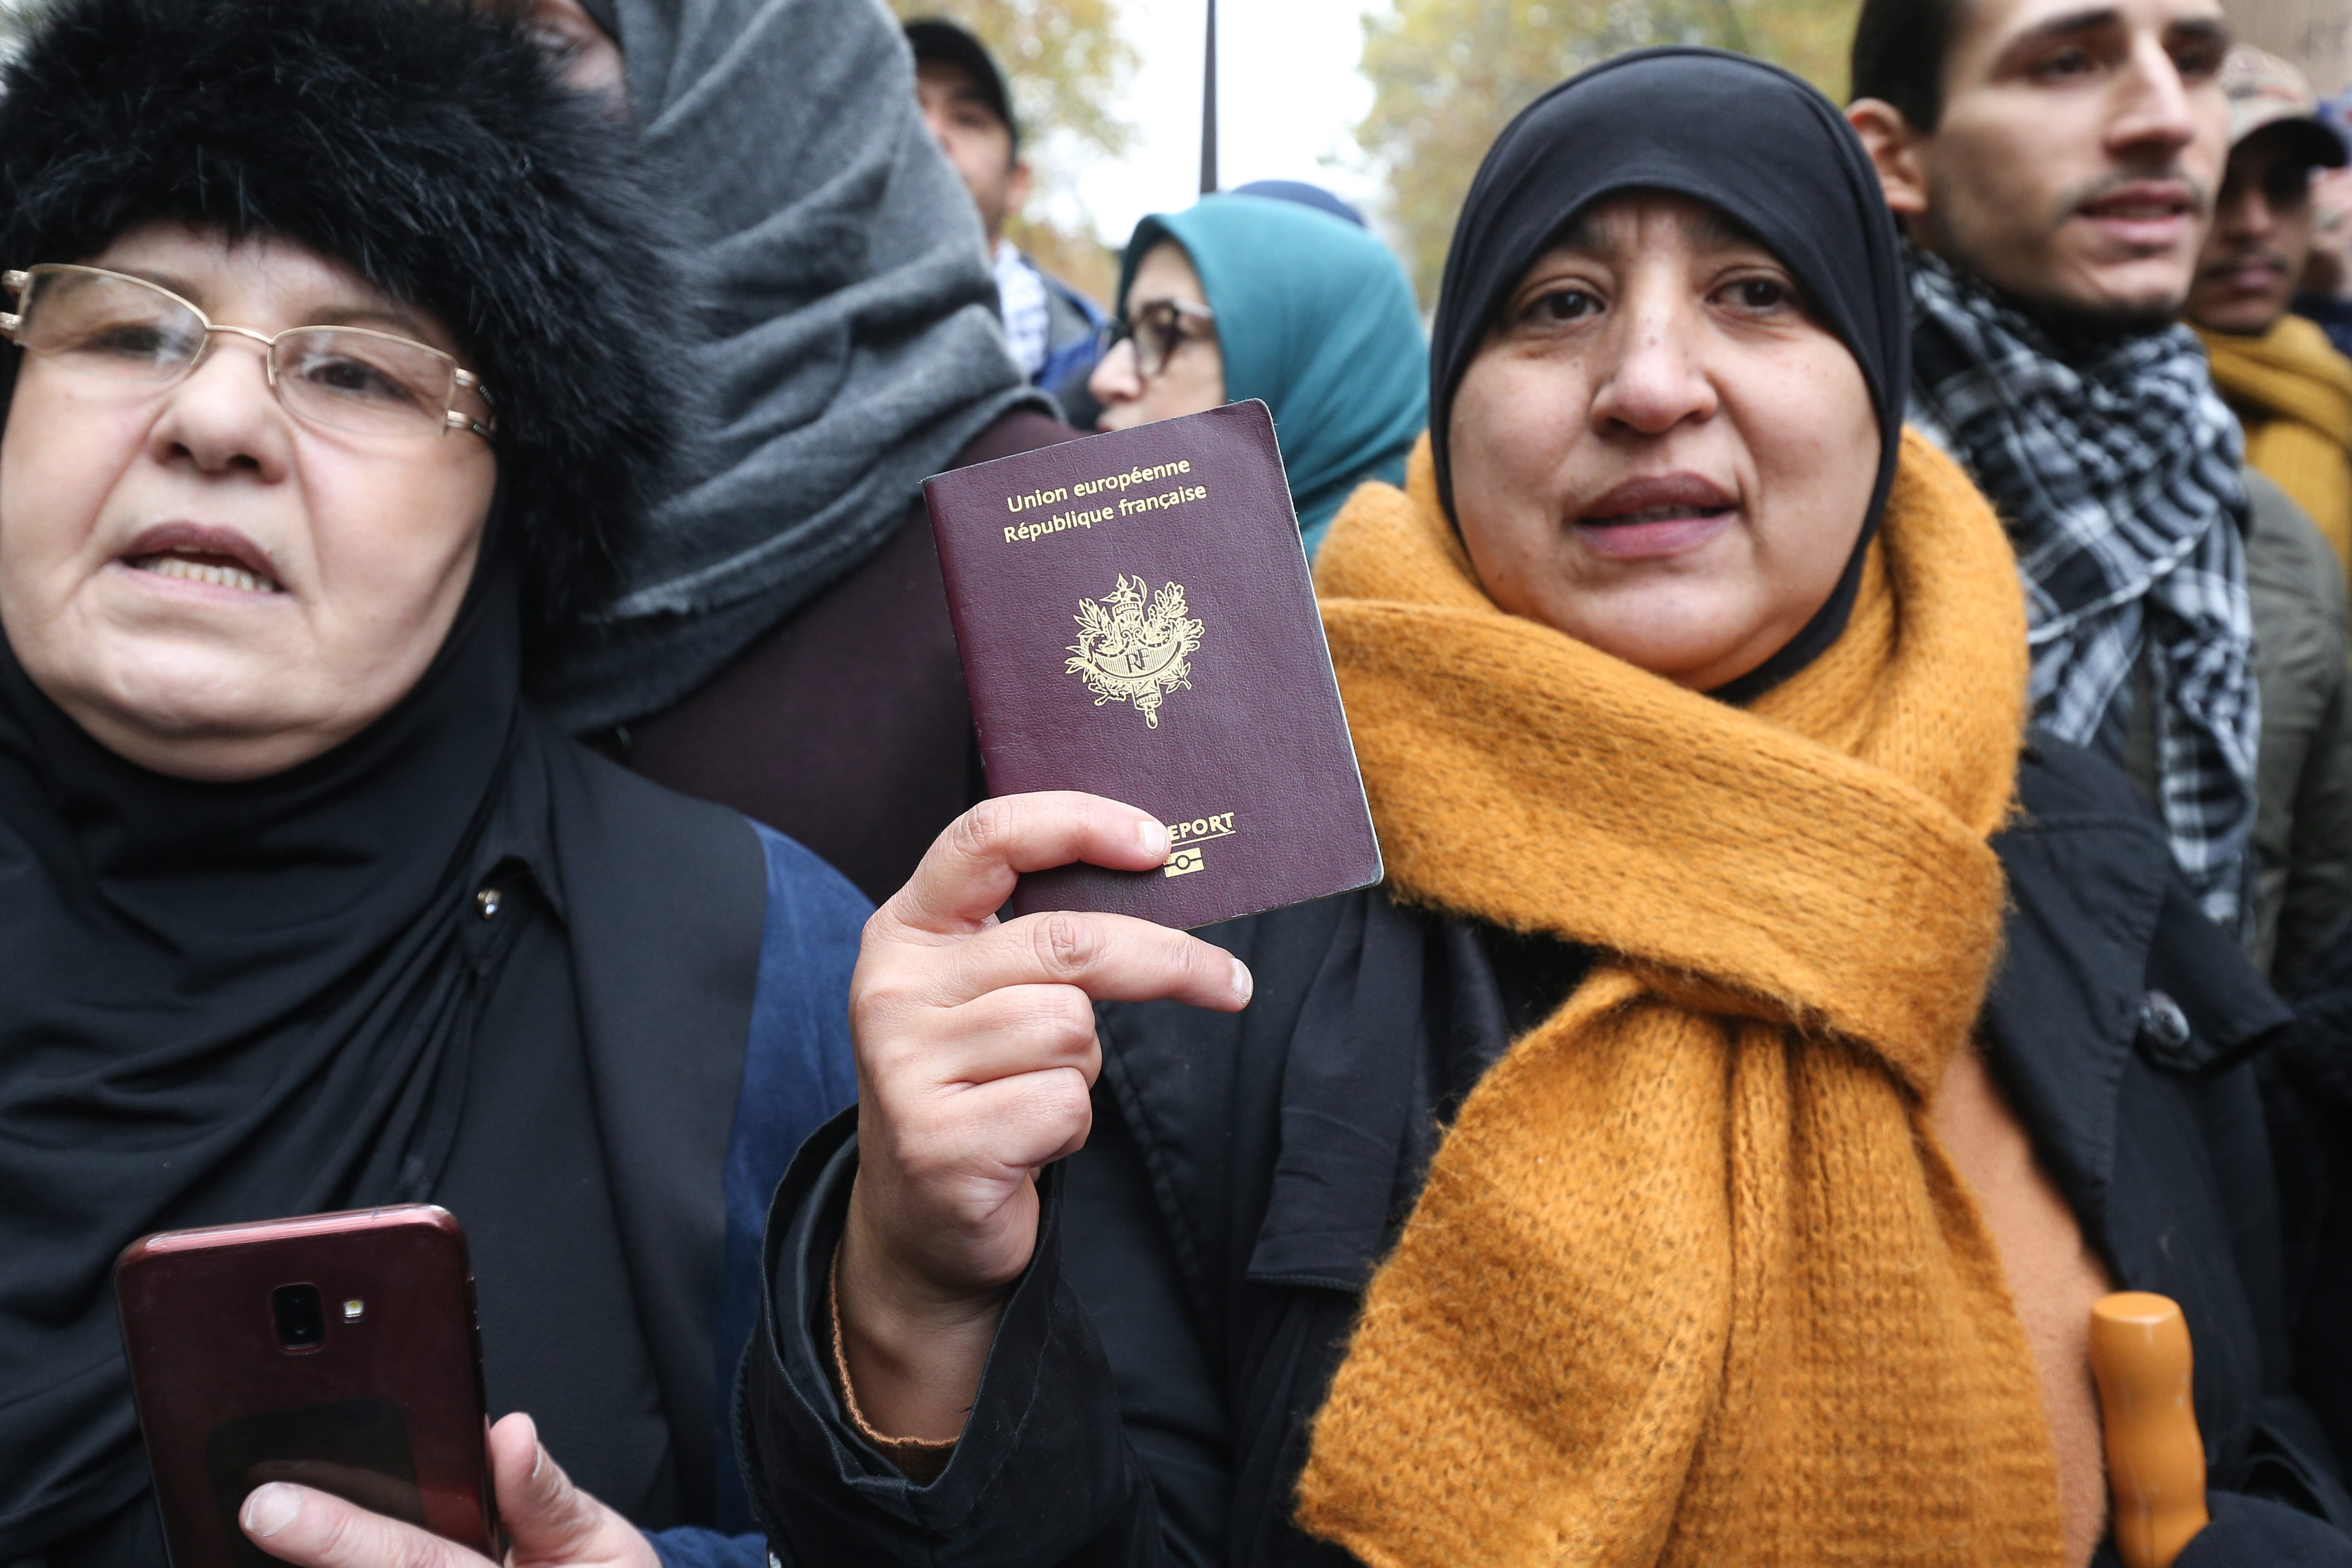 Woman show his French passport as she take part in a march near the Gare du Nord, in Paris, on November 10, 2019, to protest against Islamophobia, at the call of several anti-racist activists and collectives.